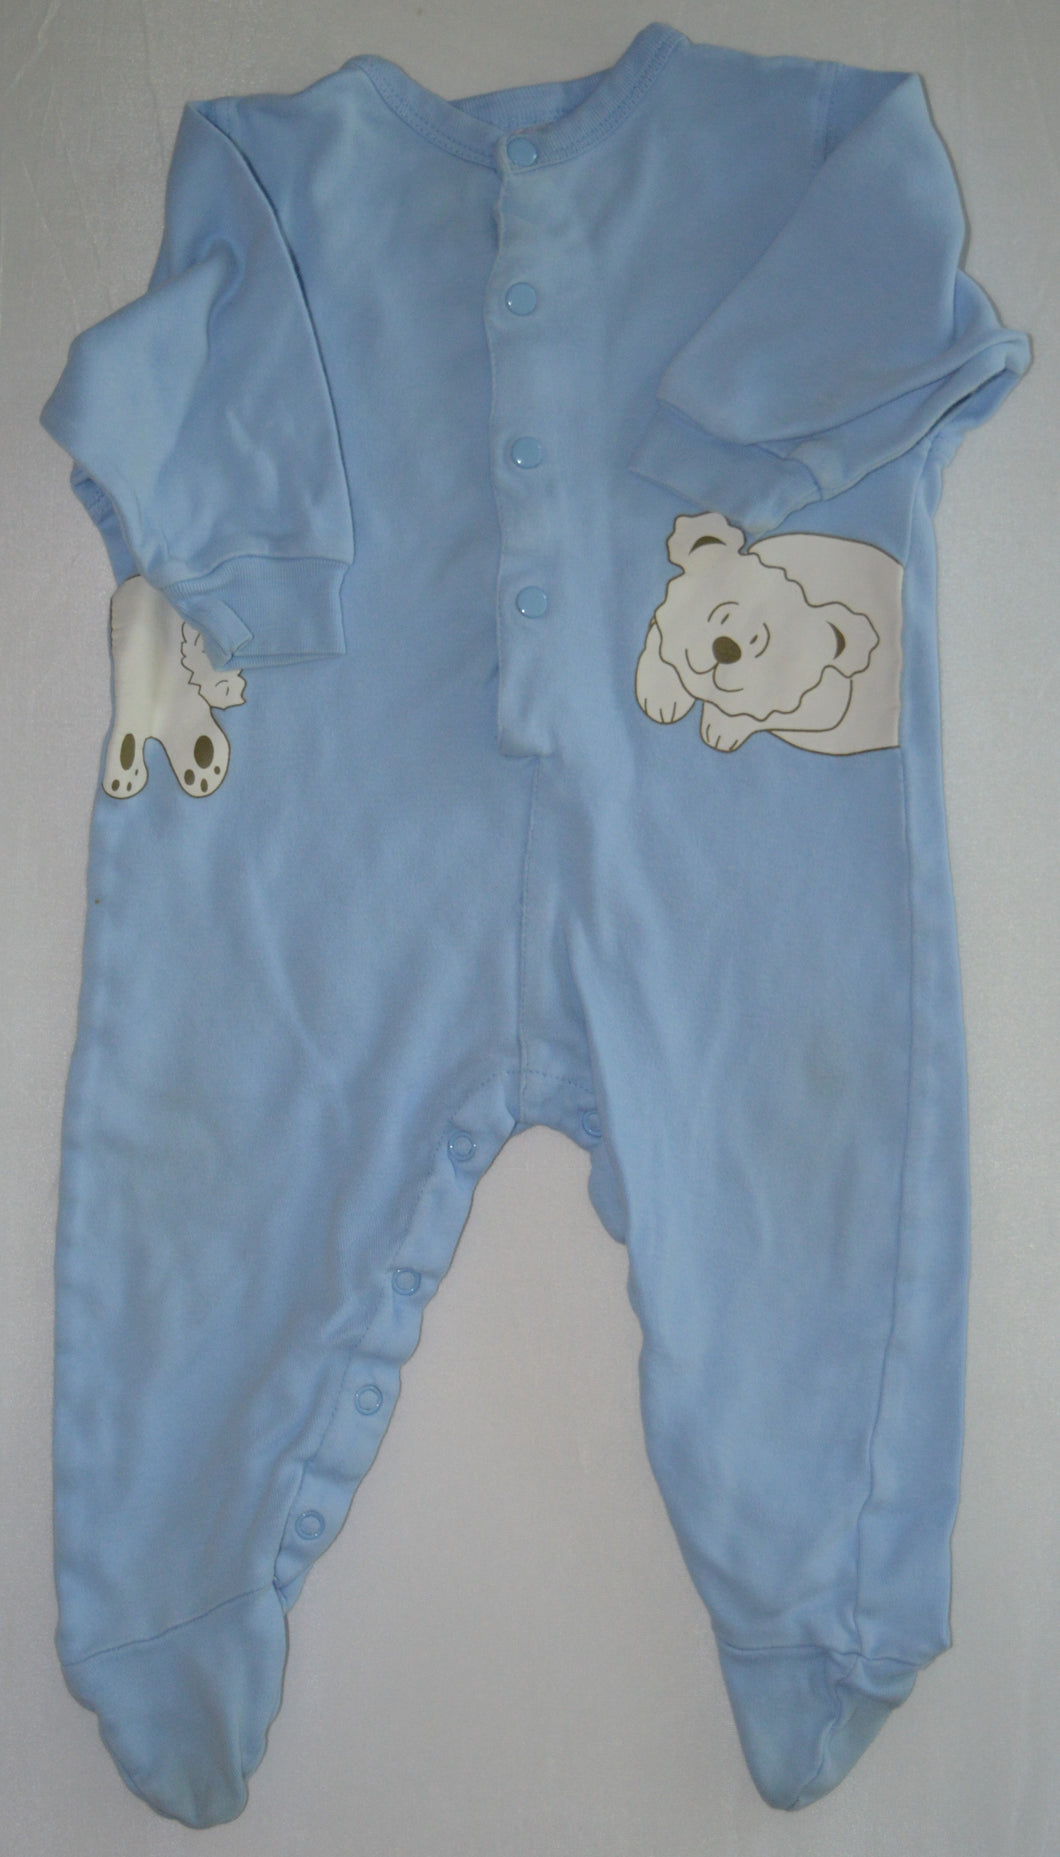 Blue with White Bear Sleeper